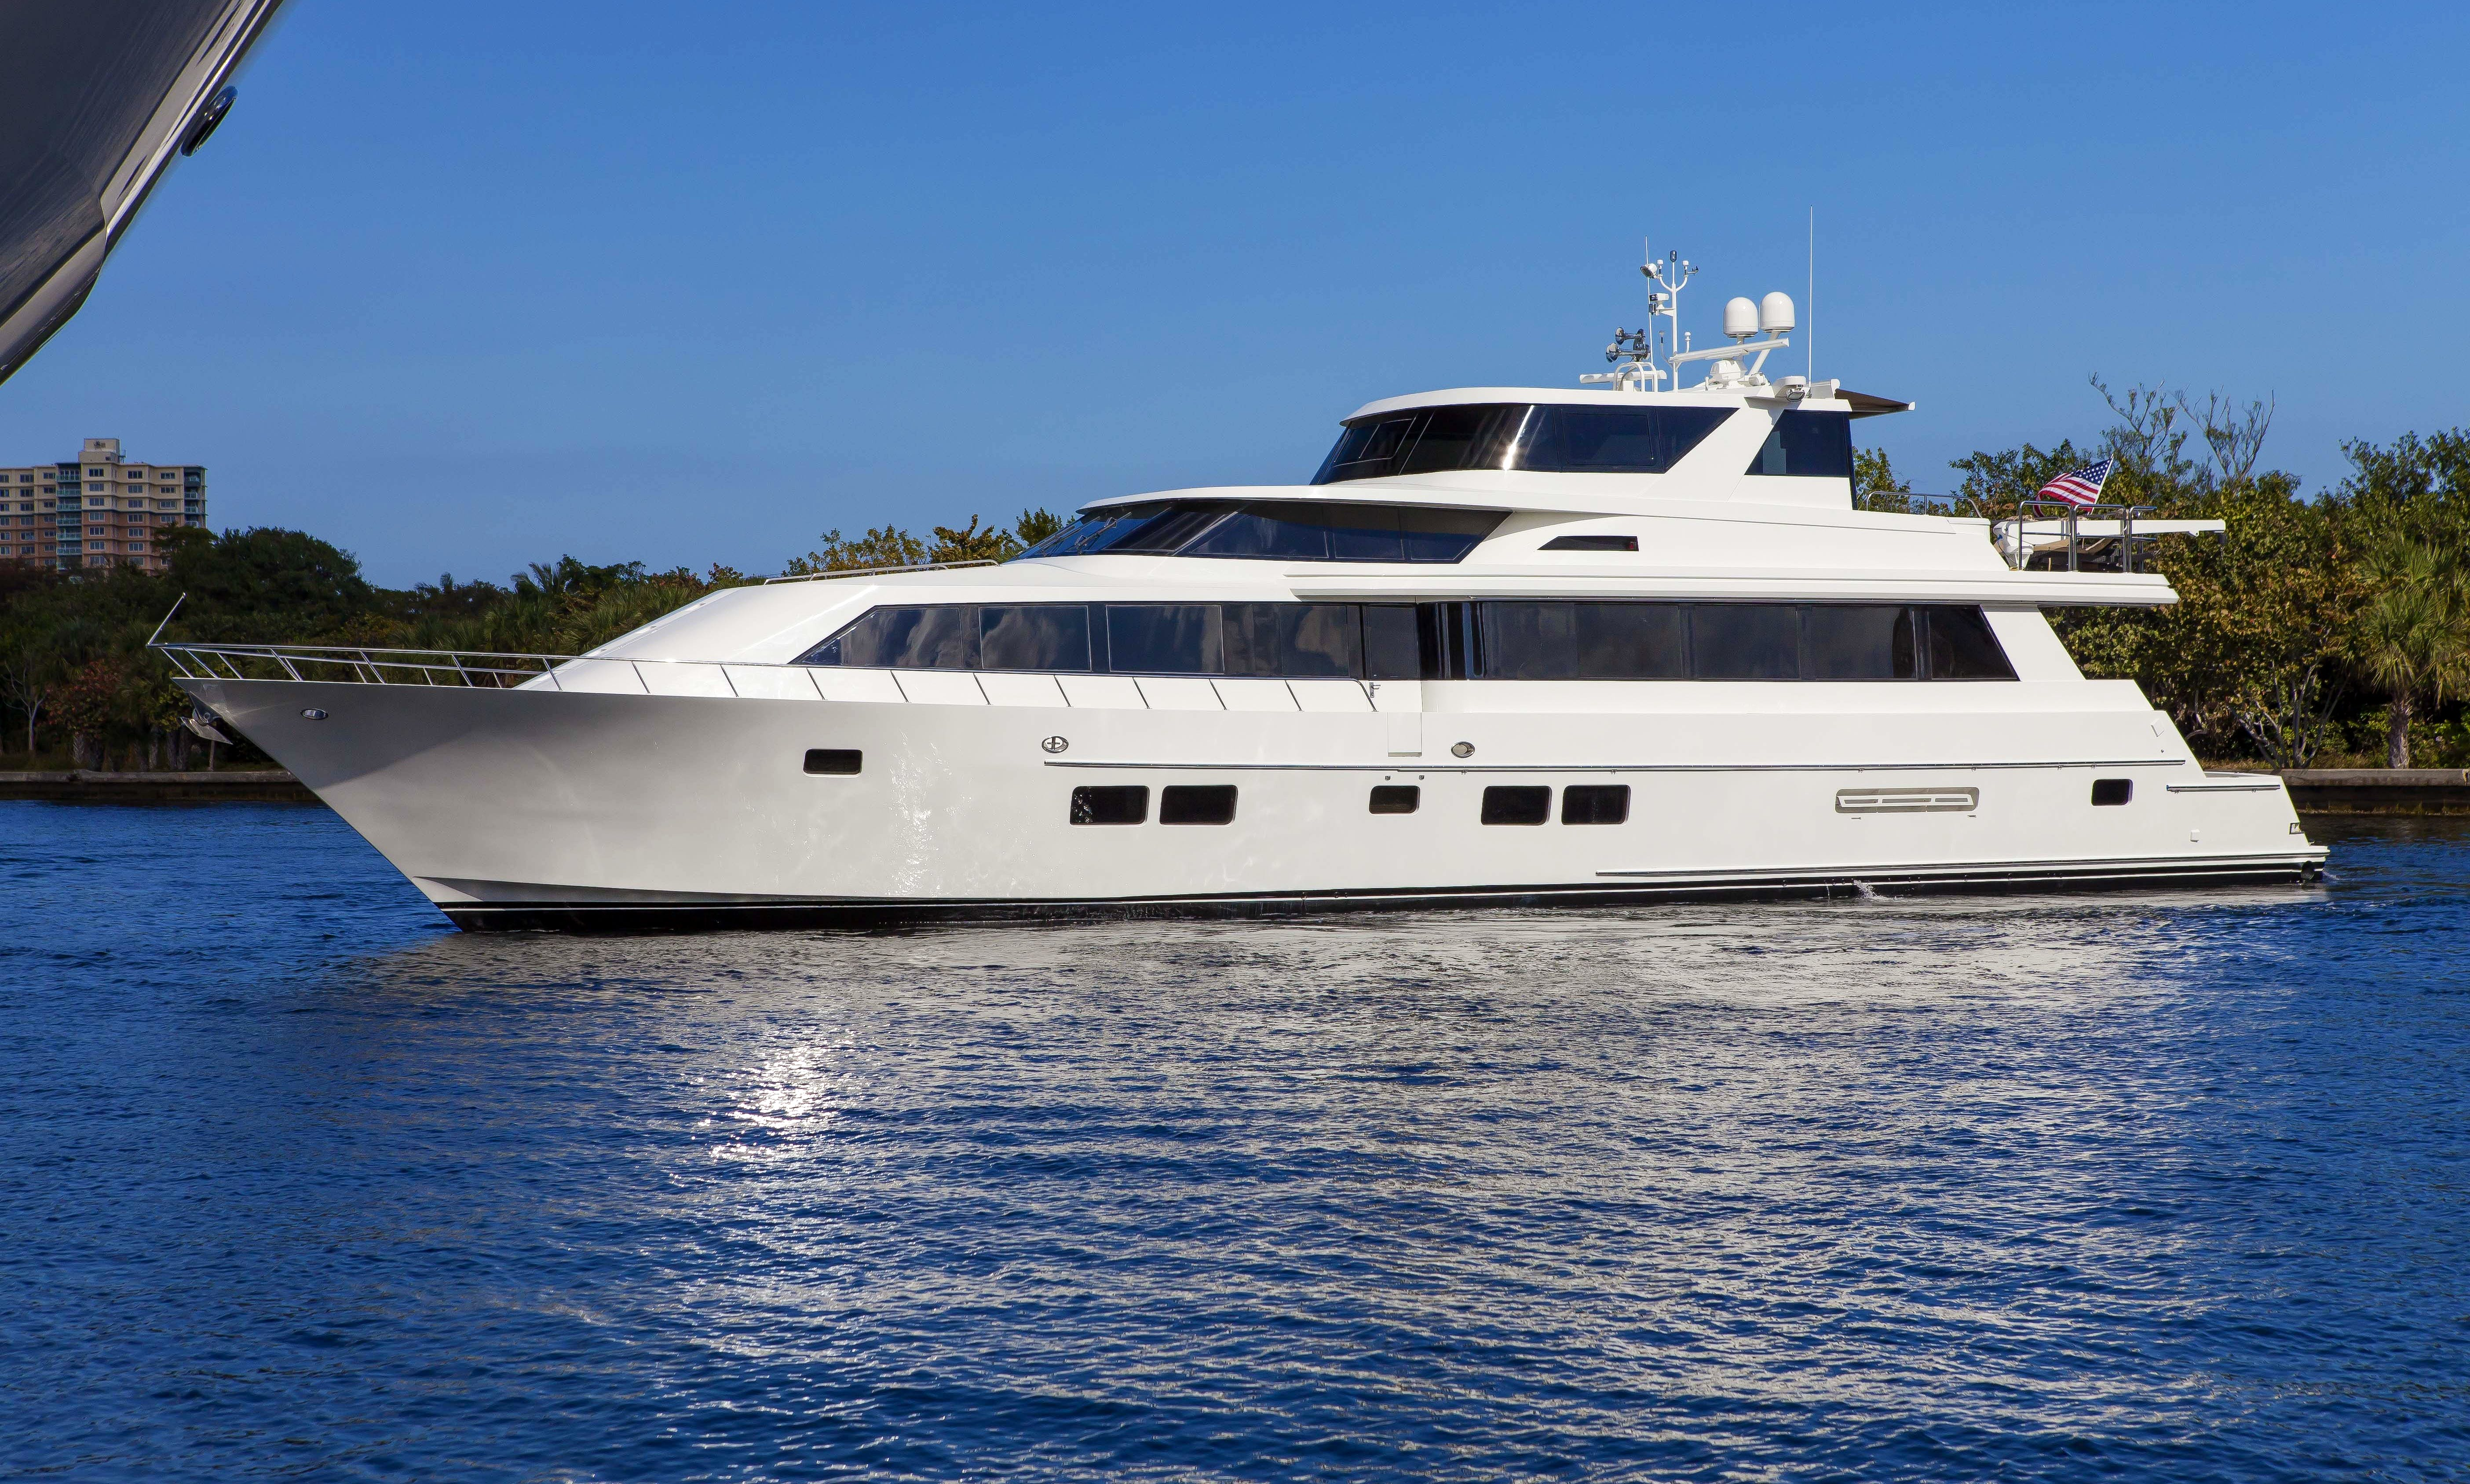 Enjoy 100' Motor Yacht for Rent in Miami